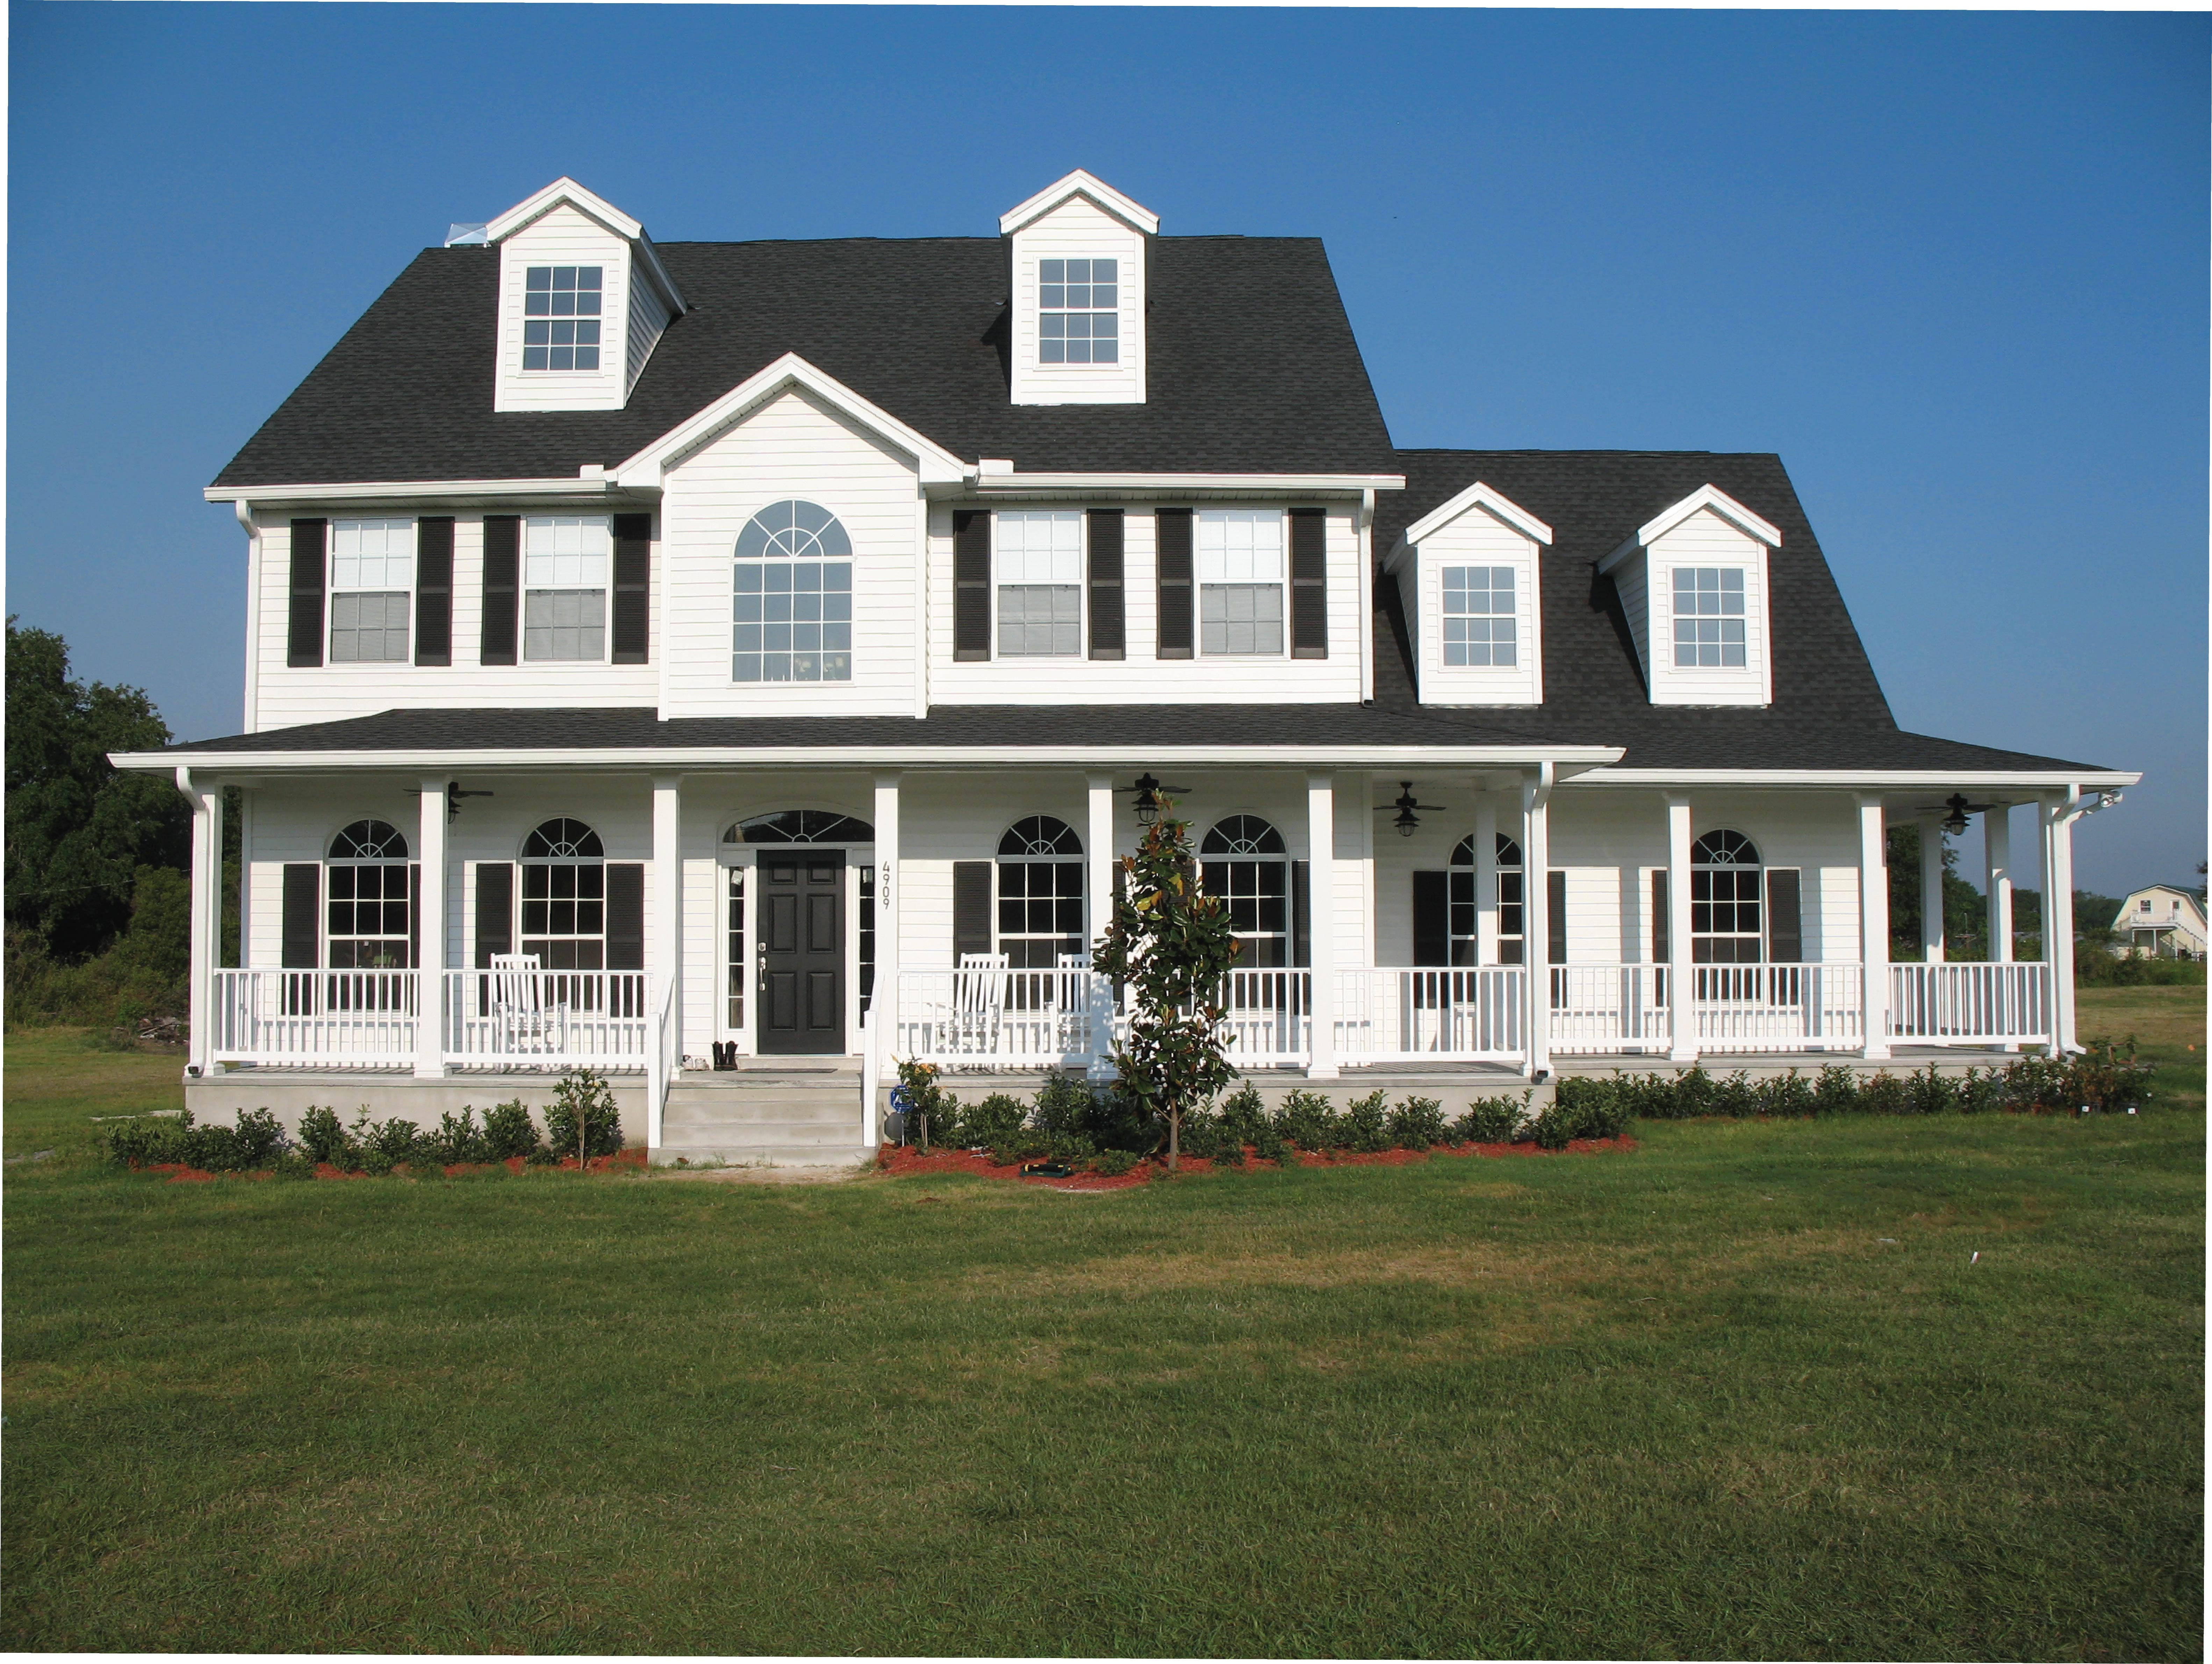 Two story house plans america s home place Two story house plans